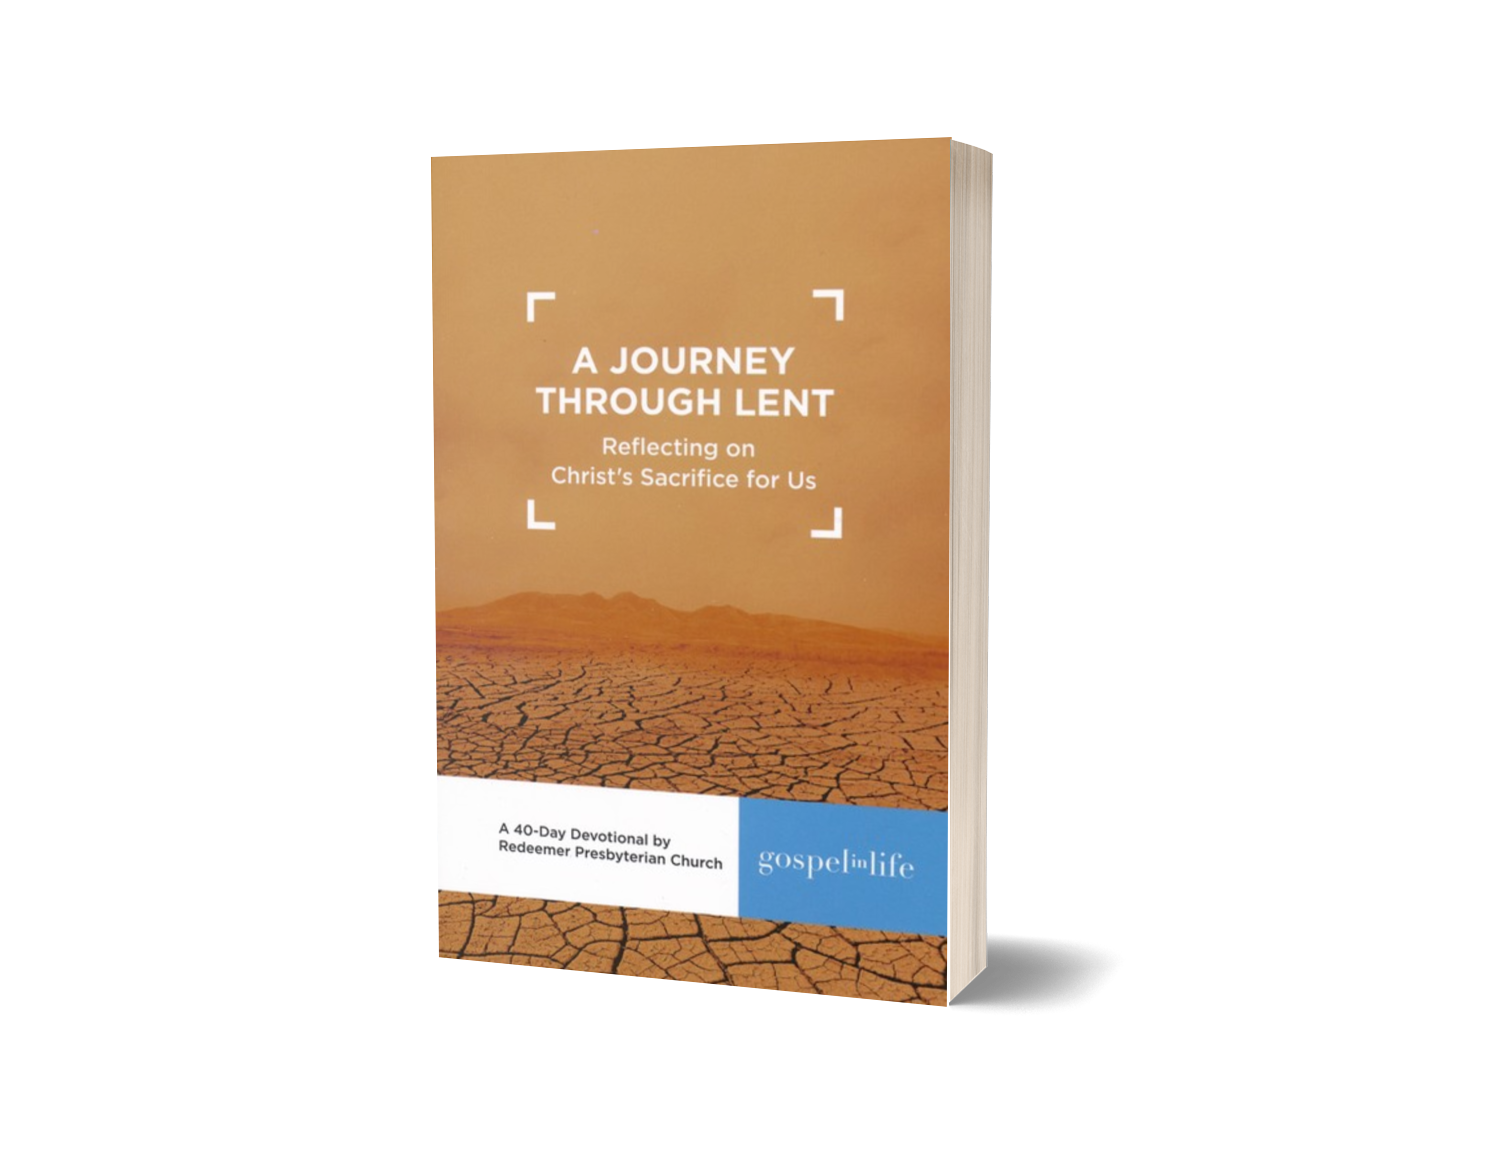 Prepare your heart for Easter with A Journey through Lent